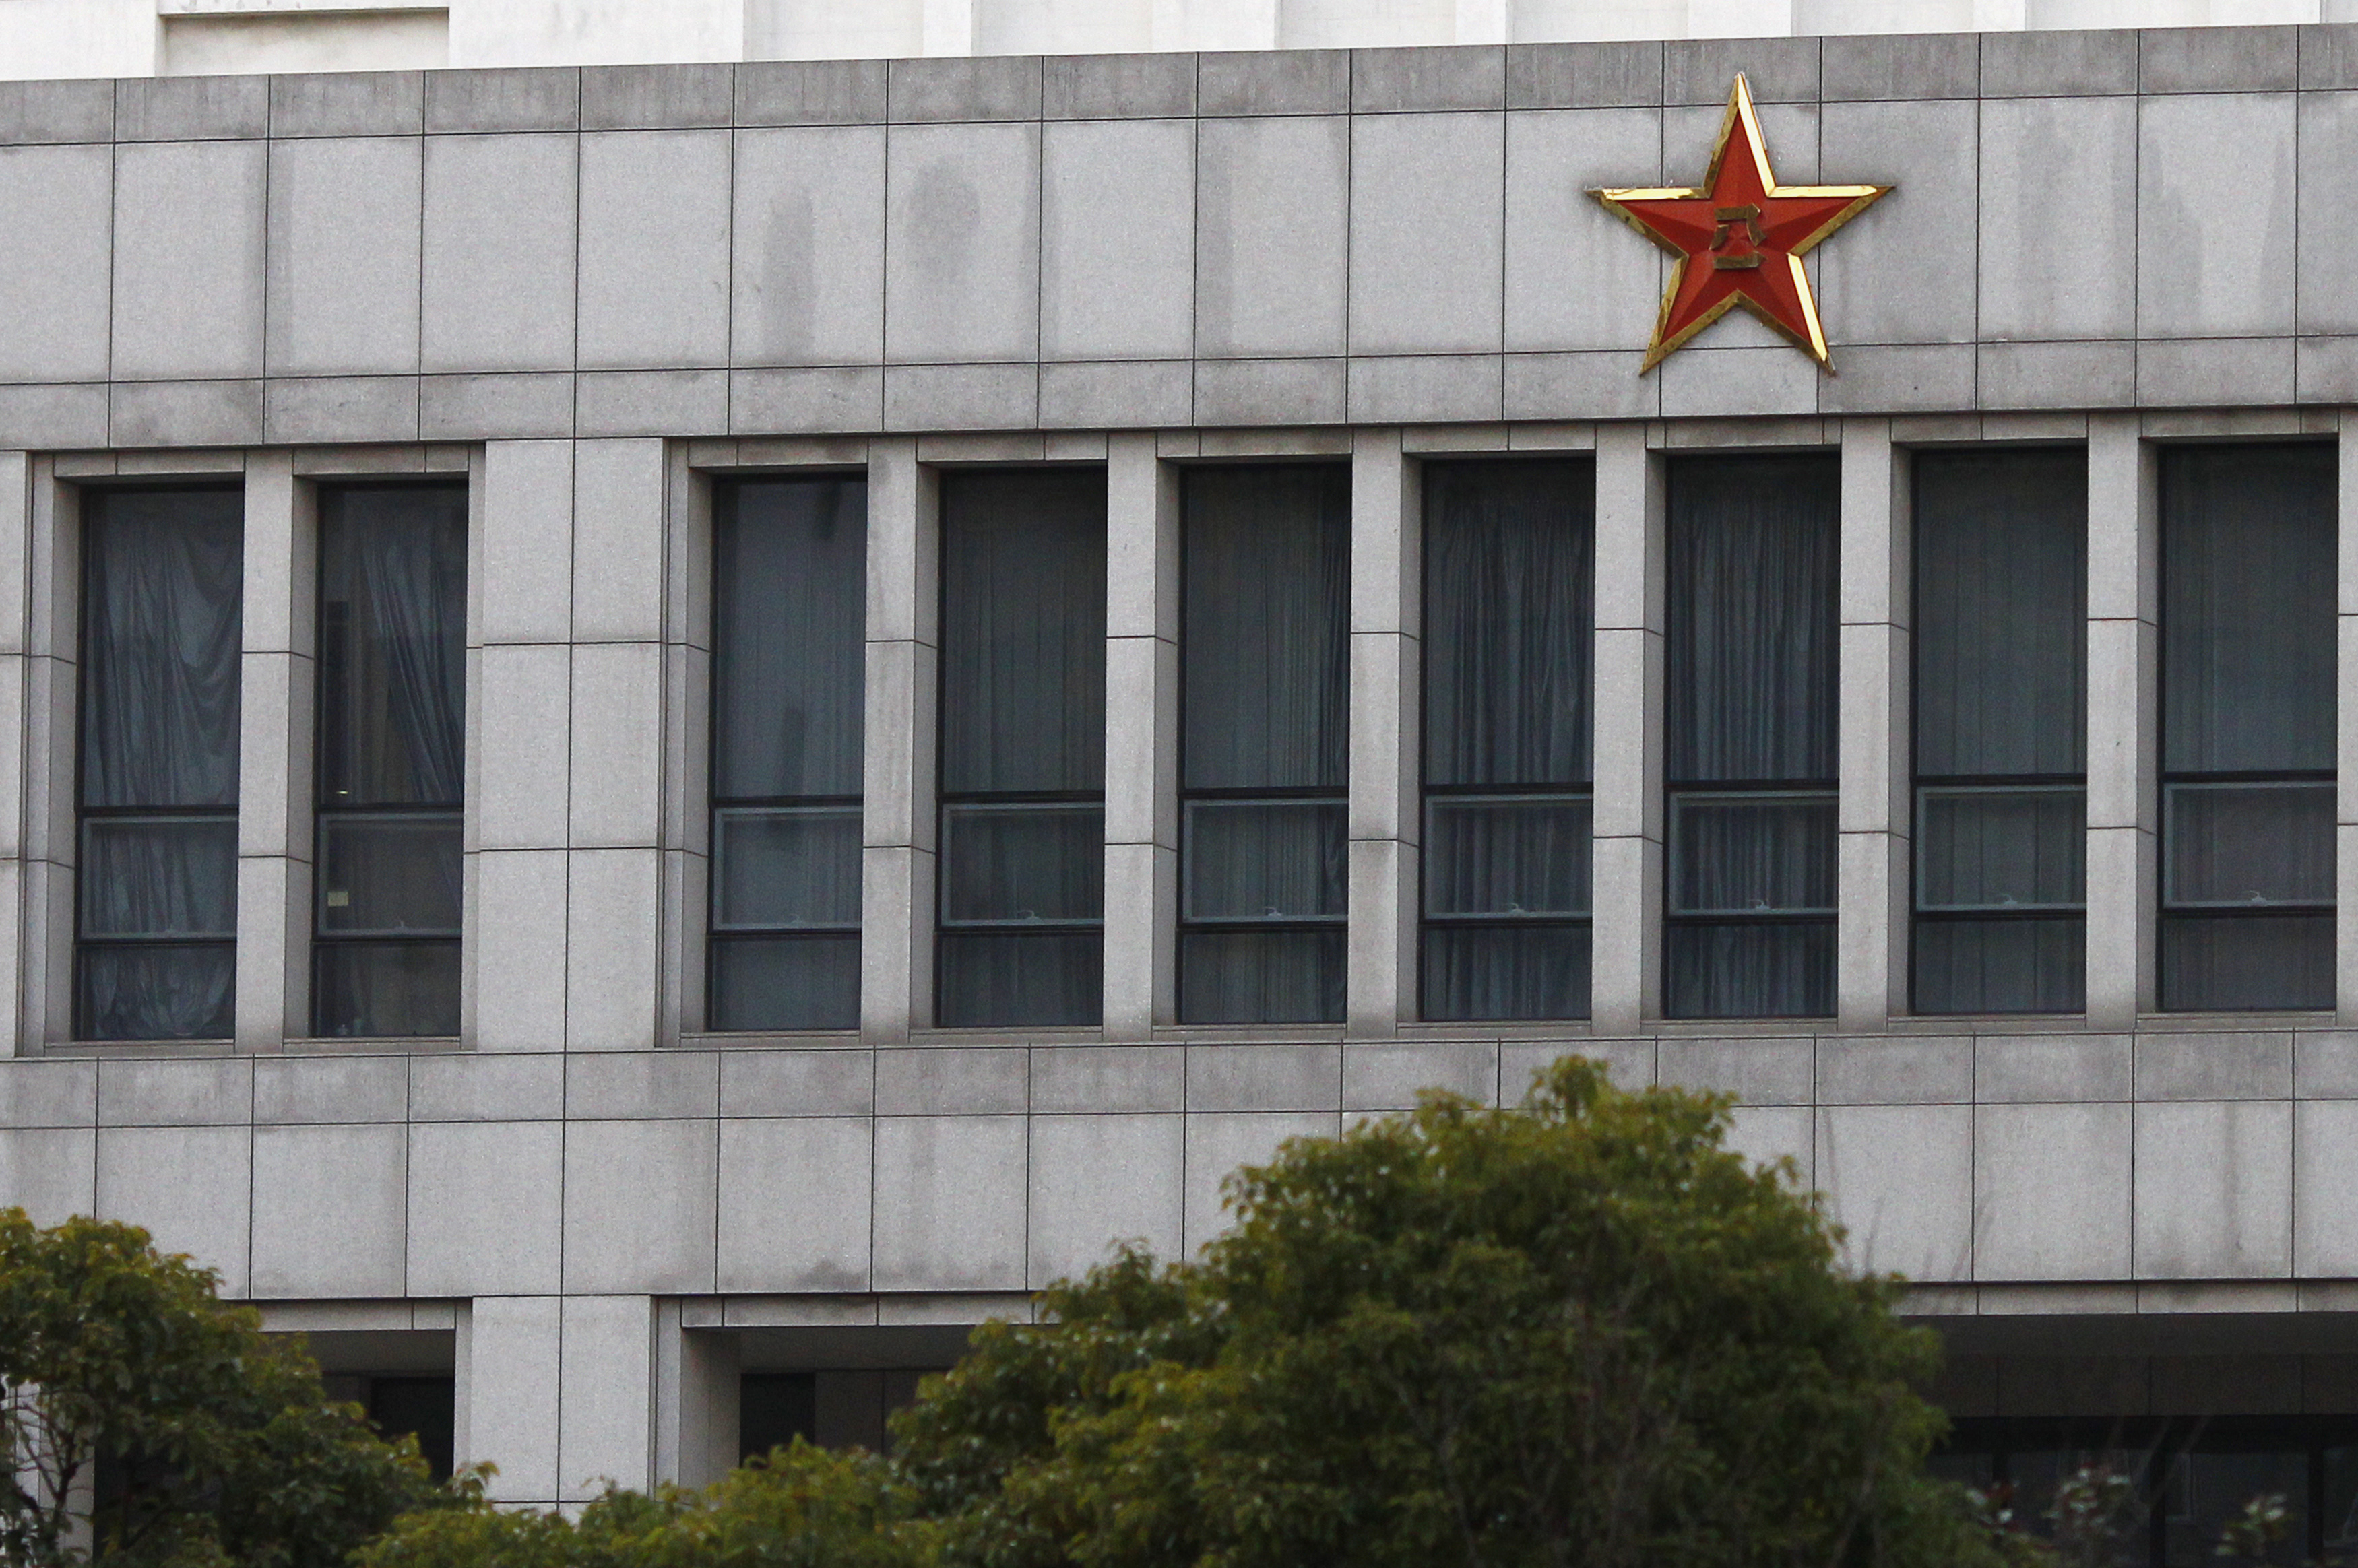 Part of the building of 'Unit 61398', a secretive Chinese military unit, is seen in the outskirts of Shanghai February 19, 2013. The unit is believed to be behind a series of hacking attacks, a U.S. computer security company said, prompting a strong denial by China and accusations that it was in fact the victim of U.S. hacking. REUTERS/Carlos Barria